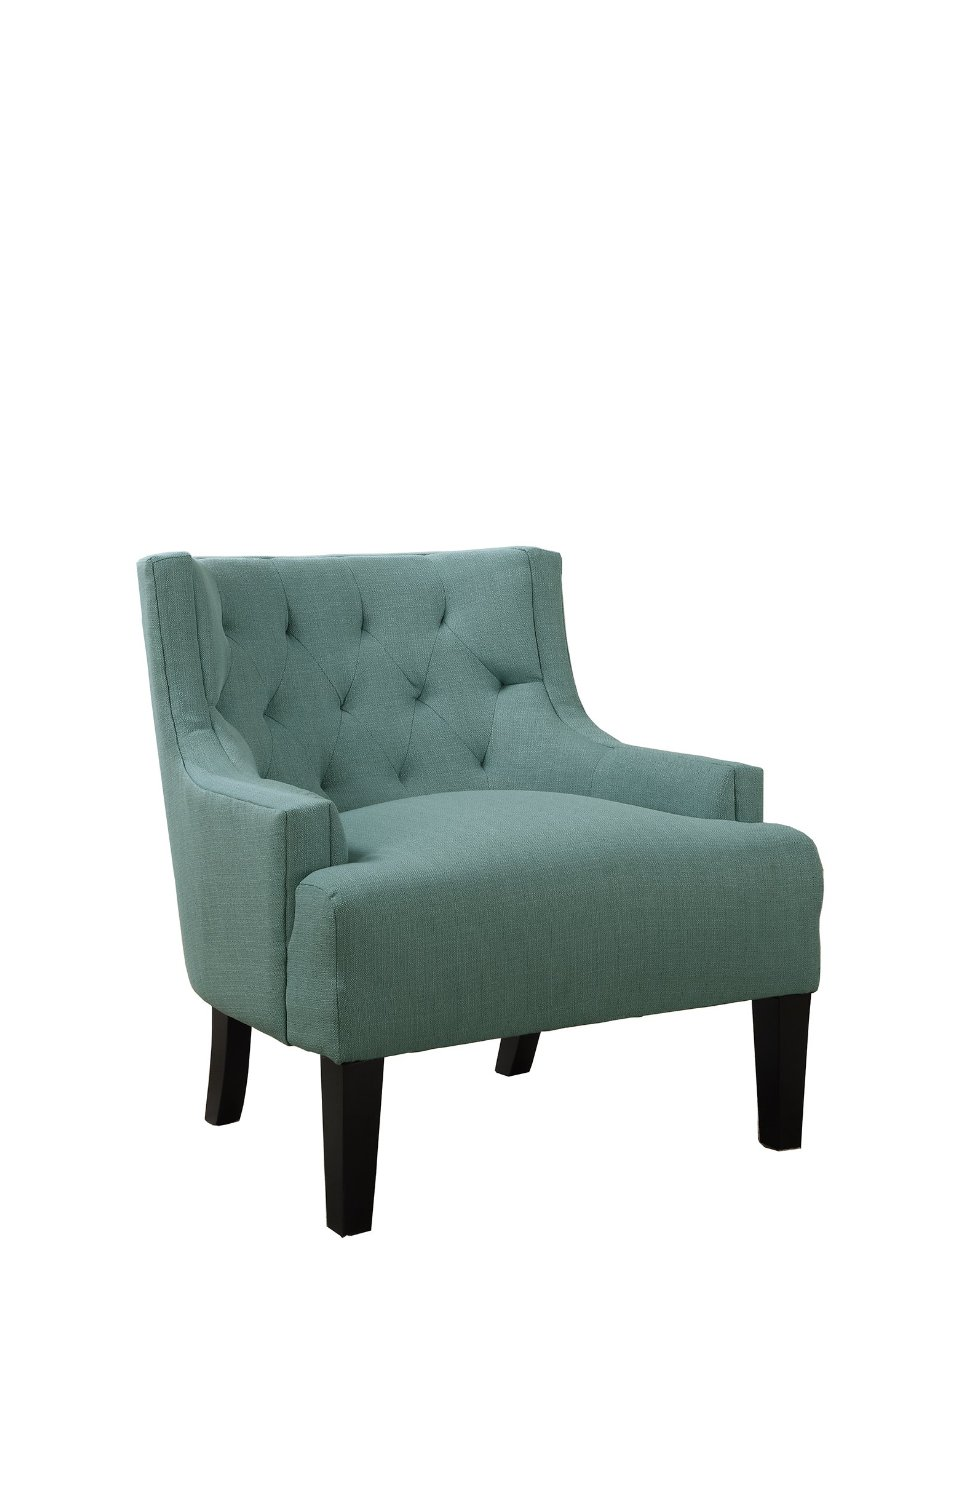 accent brilliant green on traditional about blue chair light best turquoise occasional ideas chairs